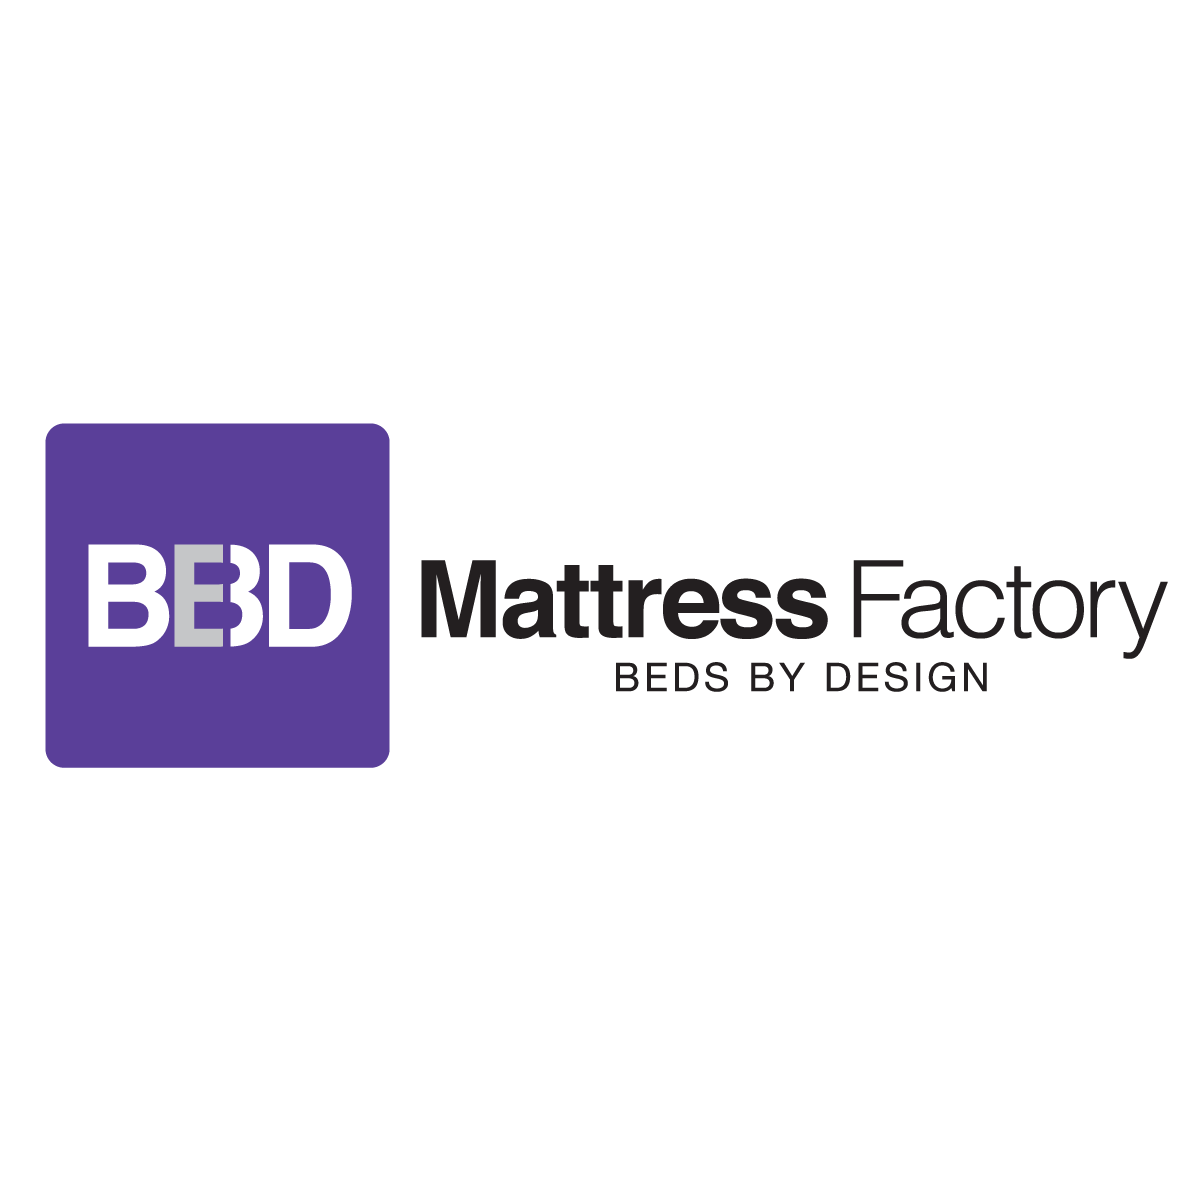 Beds By Design